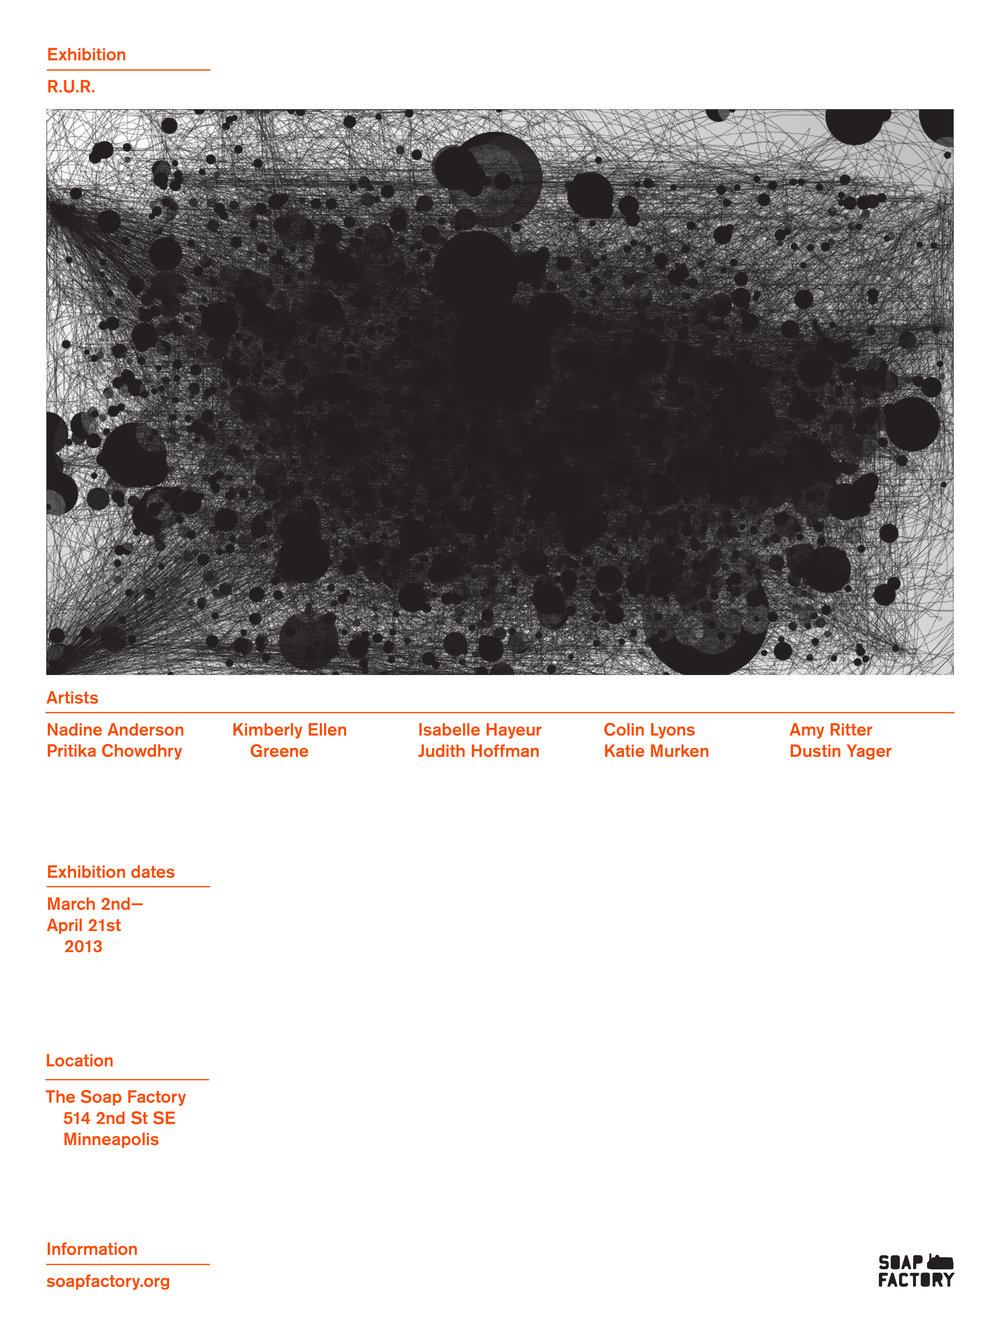 RUR exhibition poster for the Soap Factory. Concept derived from Bedno diagram ideation.